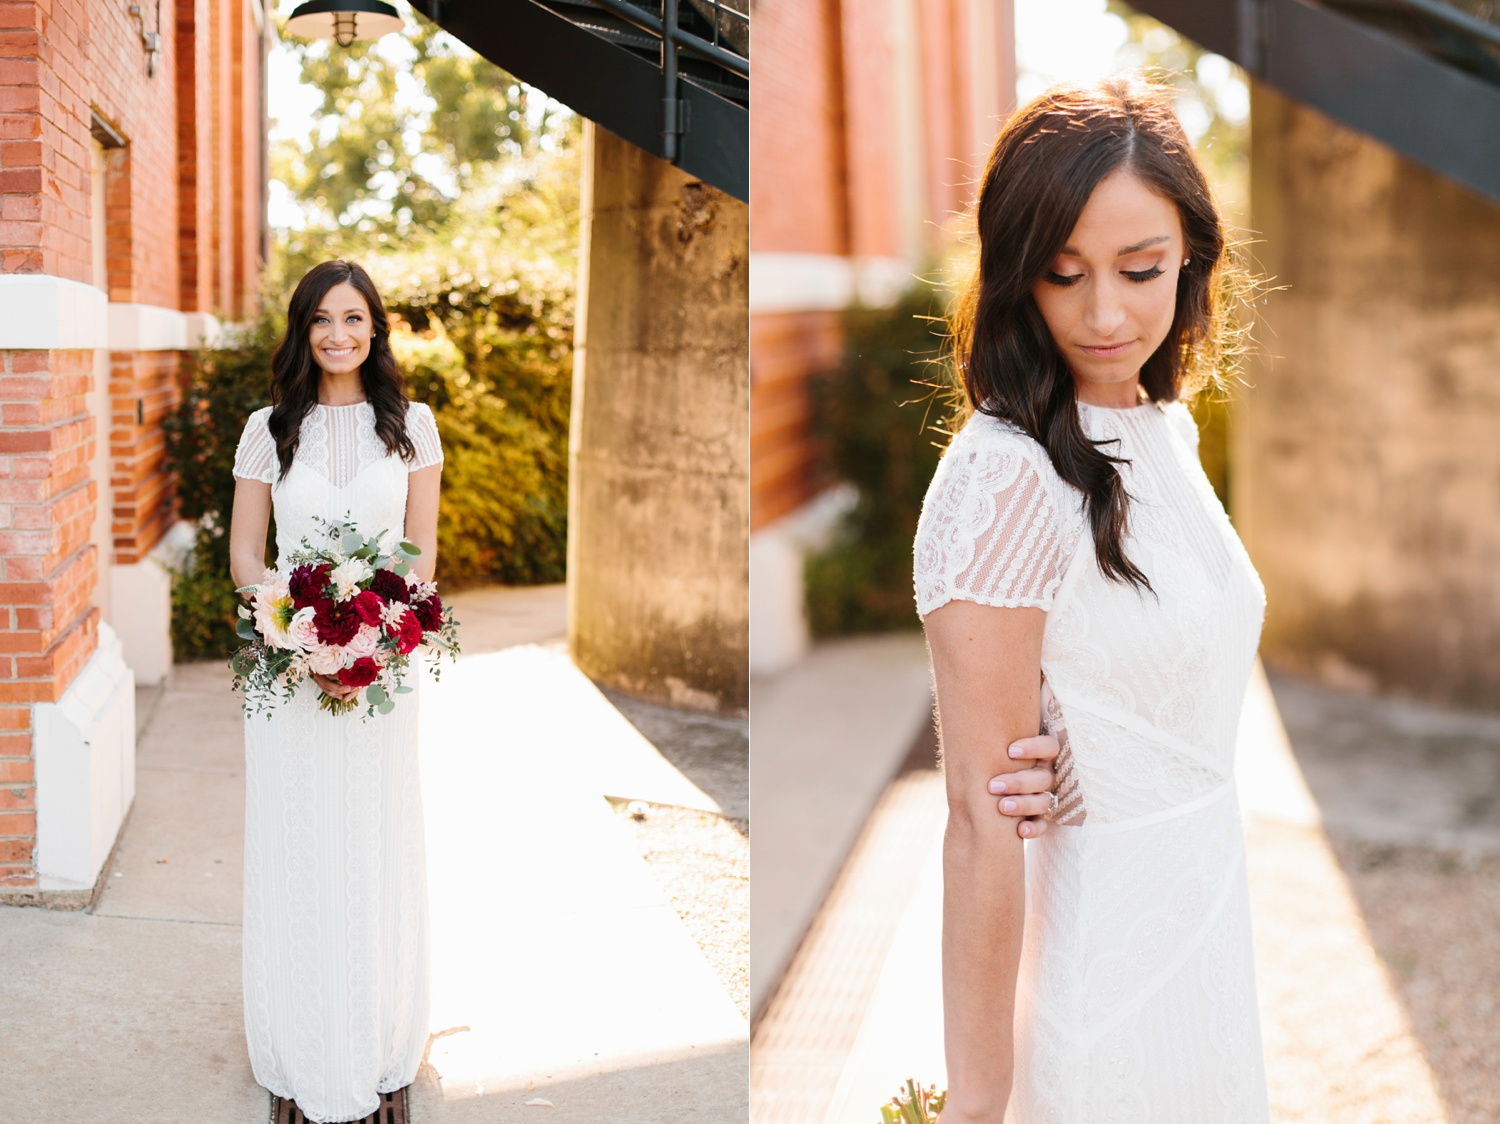 Kadee + Tyler | a raw, emotional wedding at the Filter Building on White Rock Lake in Dallas, TX by North Texas Wedding Photographer, Rachel Meagan Photography 100